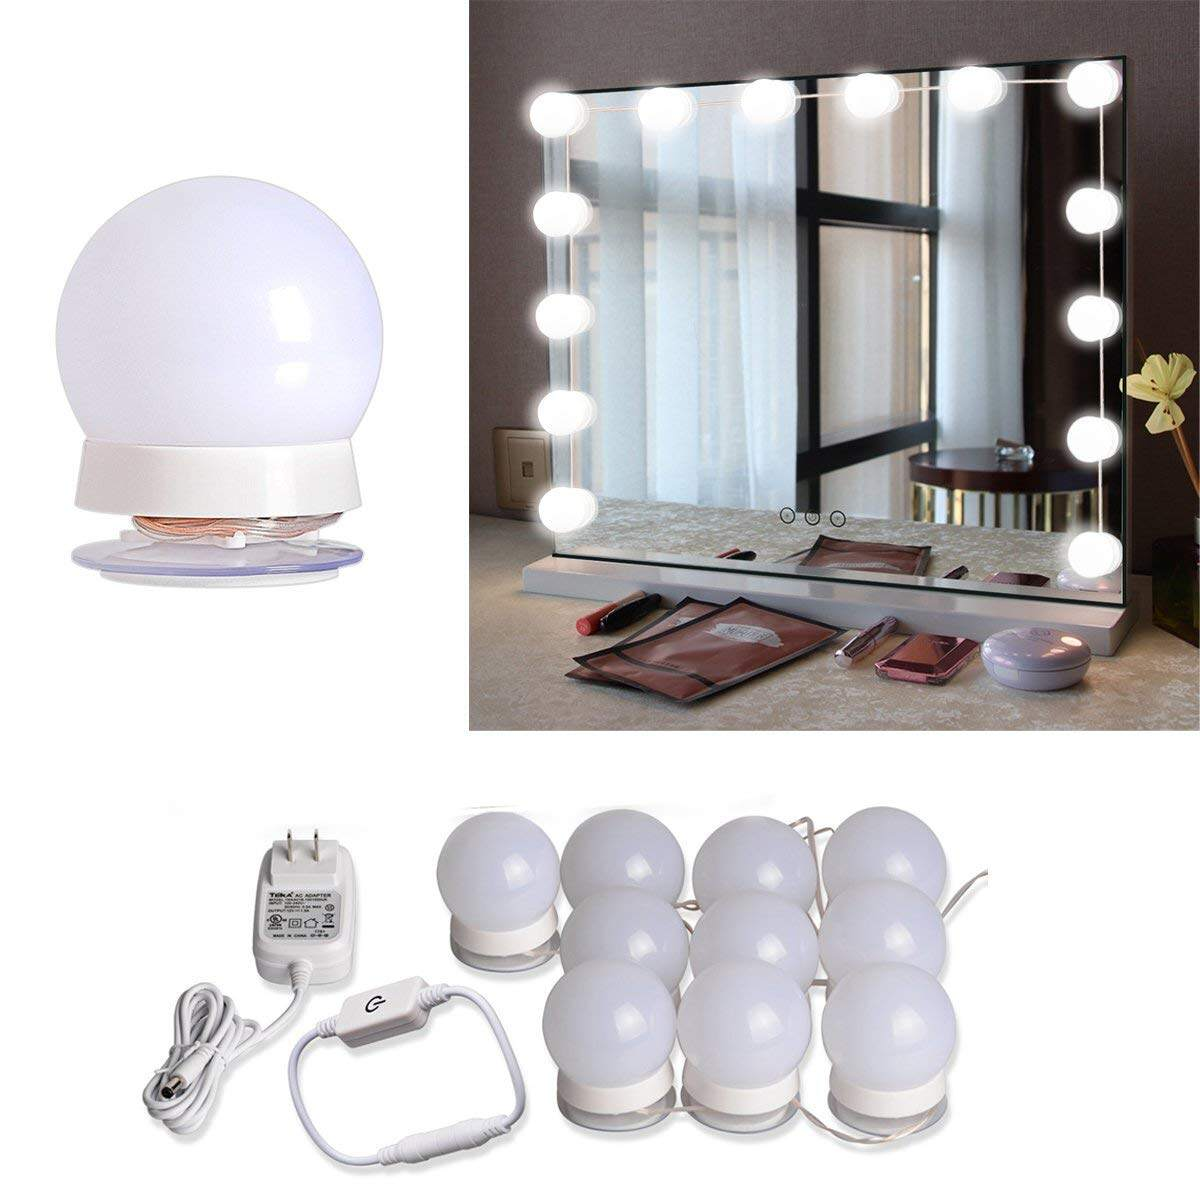 led vanity mirror light kit with 10 dimmable light bulbs. Black Bedroom Furniture Sets. Home Design Ideas